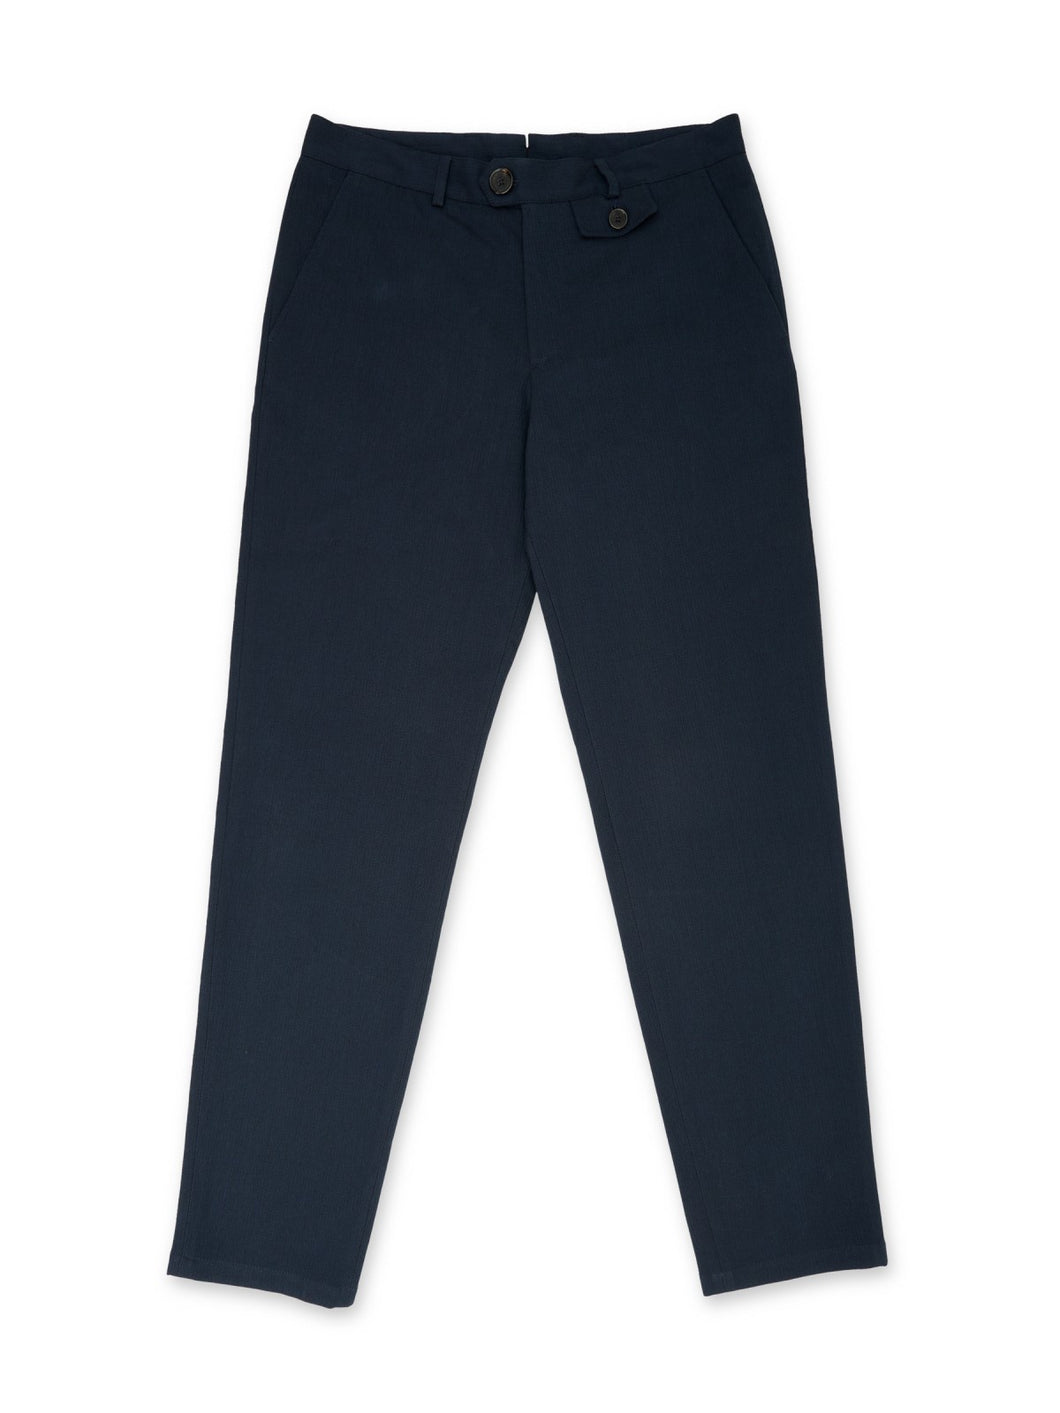 Oliver Spencer - Fishtail Trouser - Cannock Navy